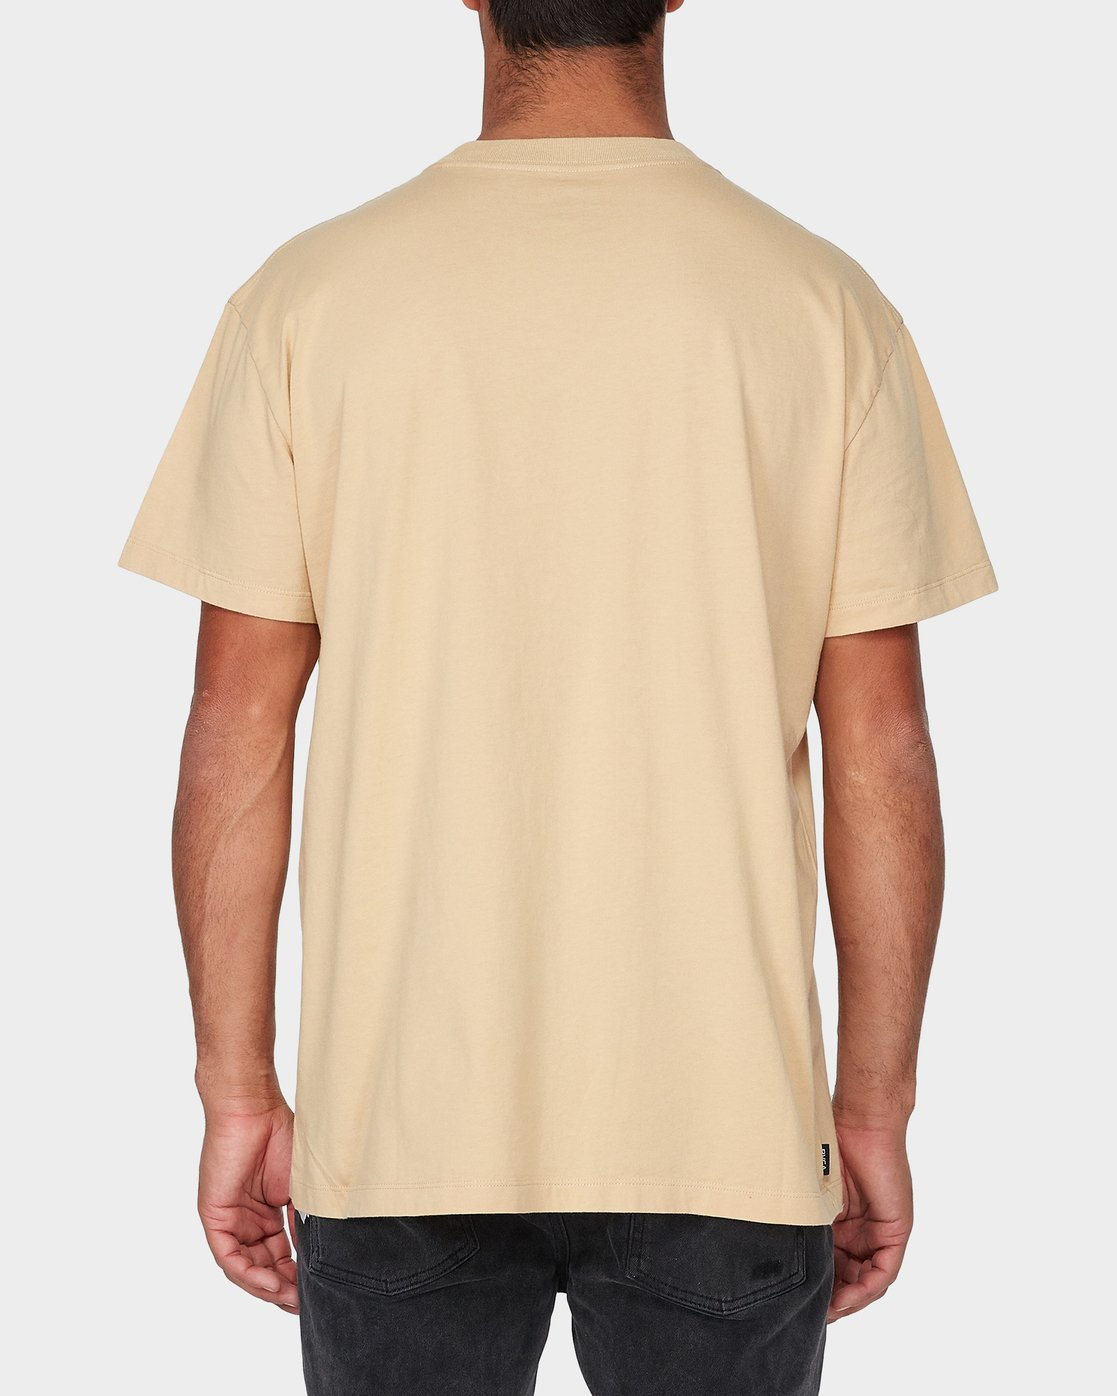 2 Chaotic Short Sleeve T-Shirt Yellow R193062 RVCA